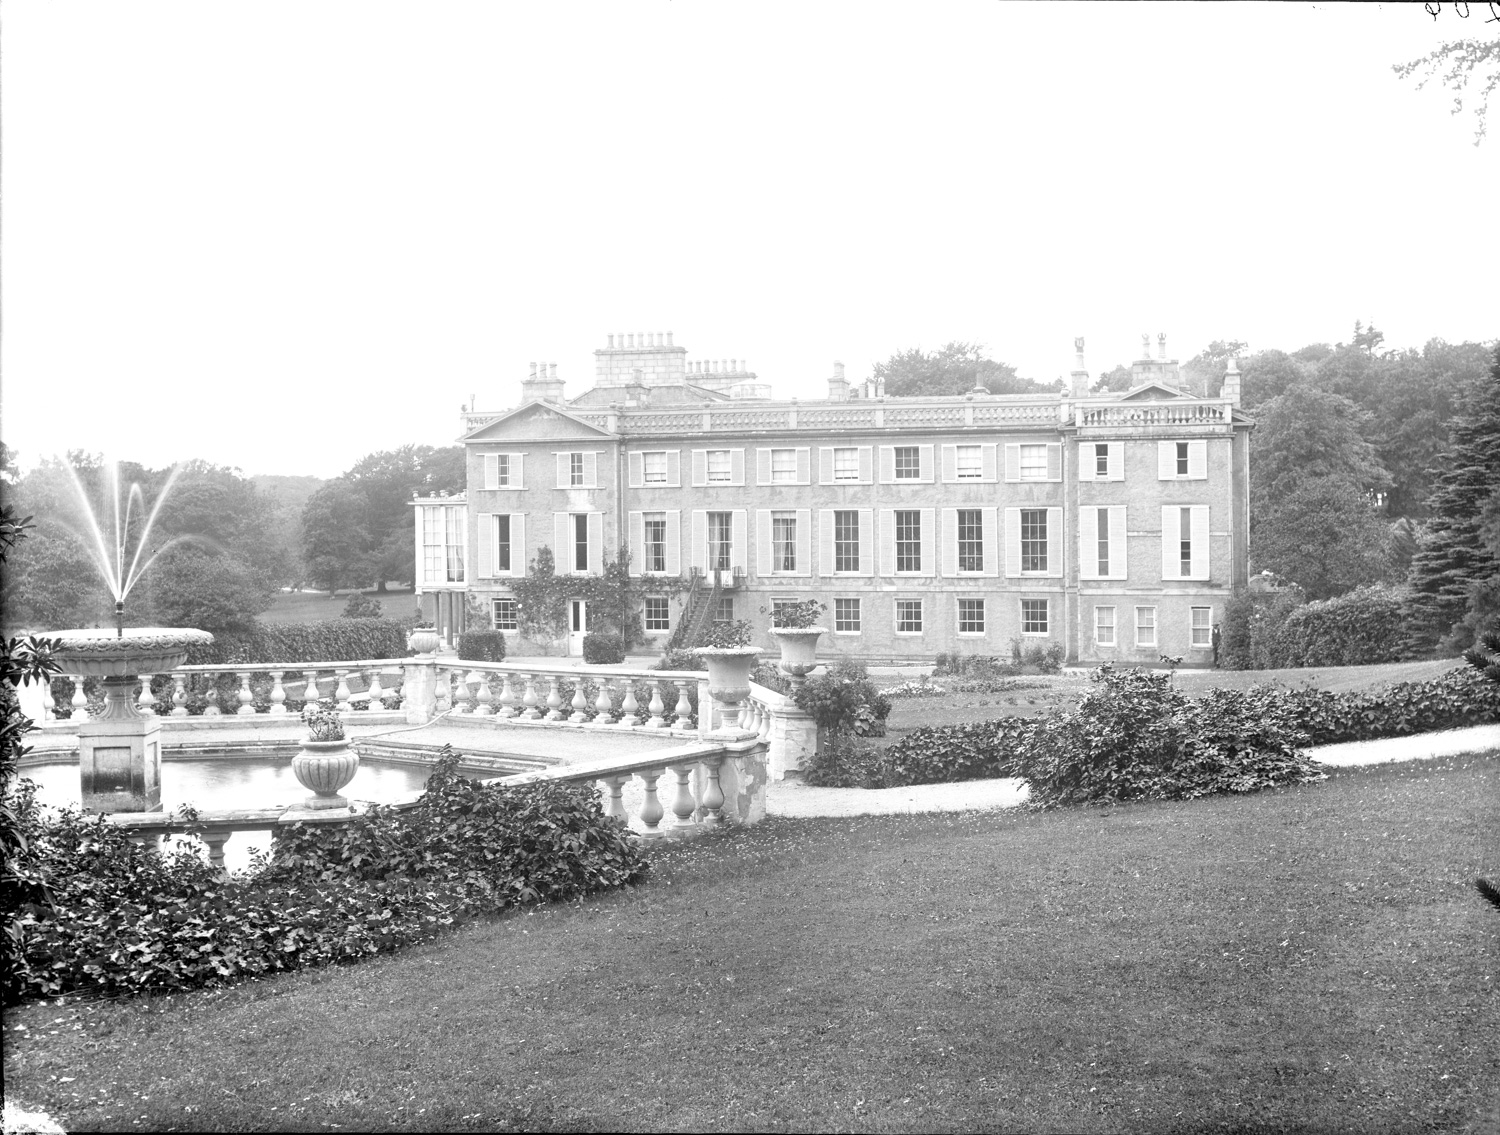 19th century image of Pitfour House, Mintlaw.